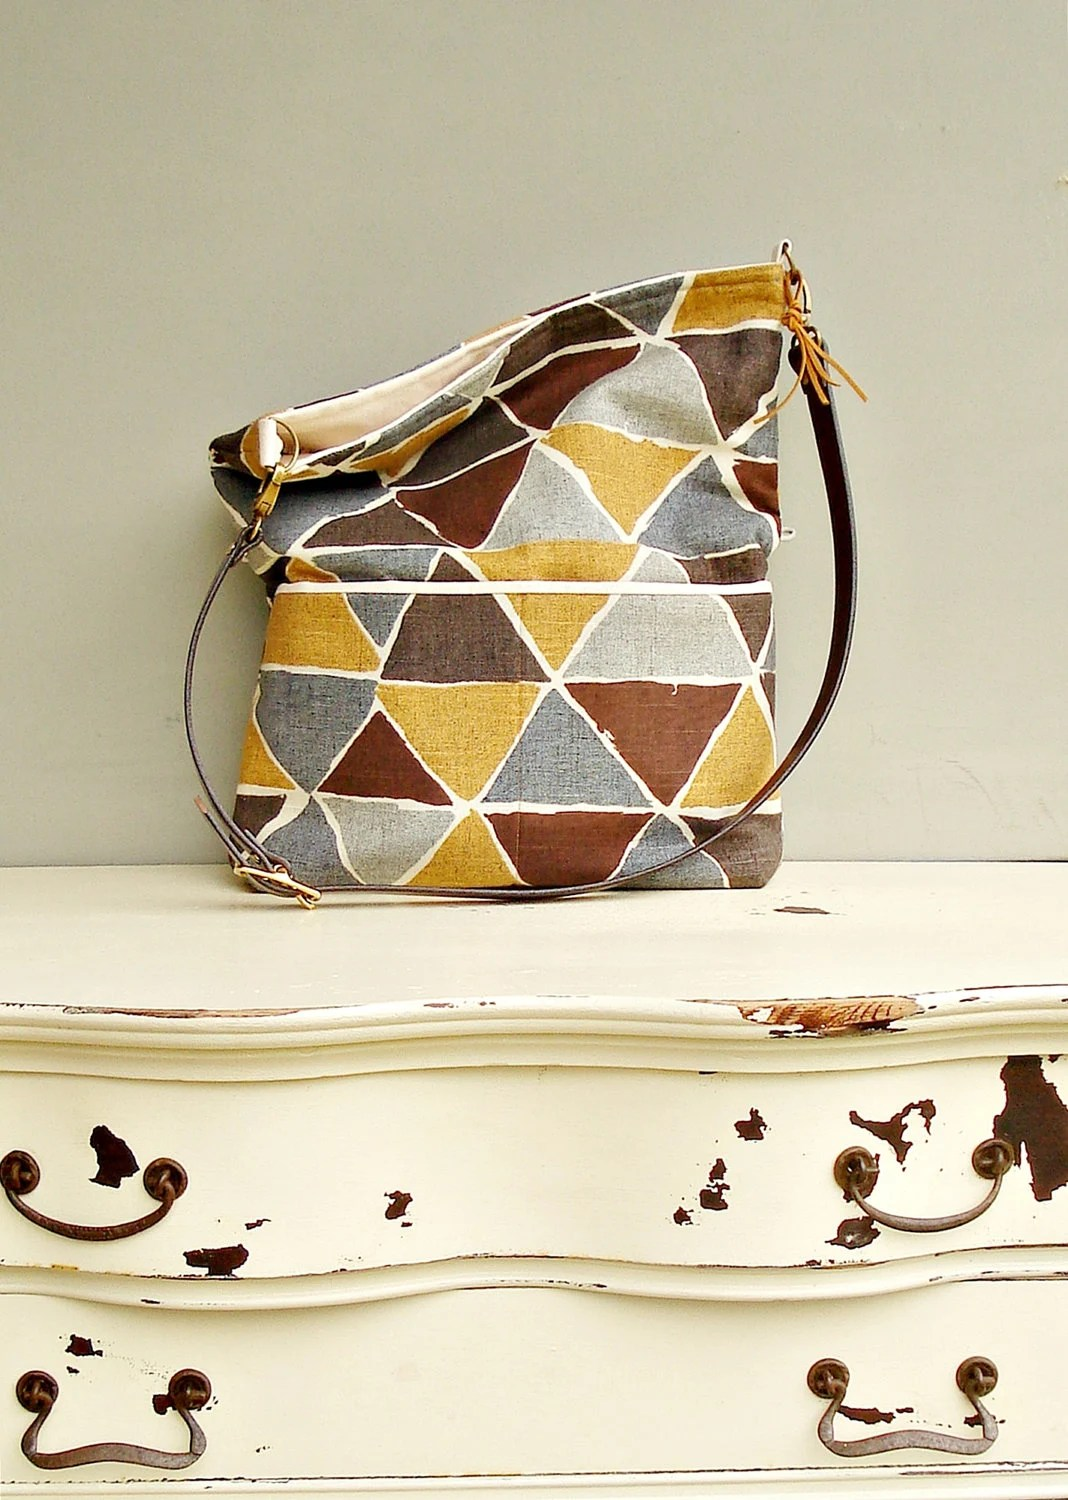 Geometric Triangle Tote Bag -Choose Your Strap - Grey, Brown and Mustard Gold - Messenger Bag - Leather Strap Foldover Hobo Bag -  (no3) - MondayMorningStudios